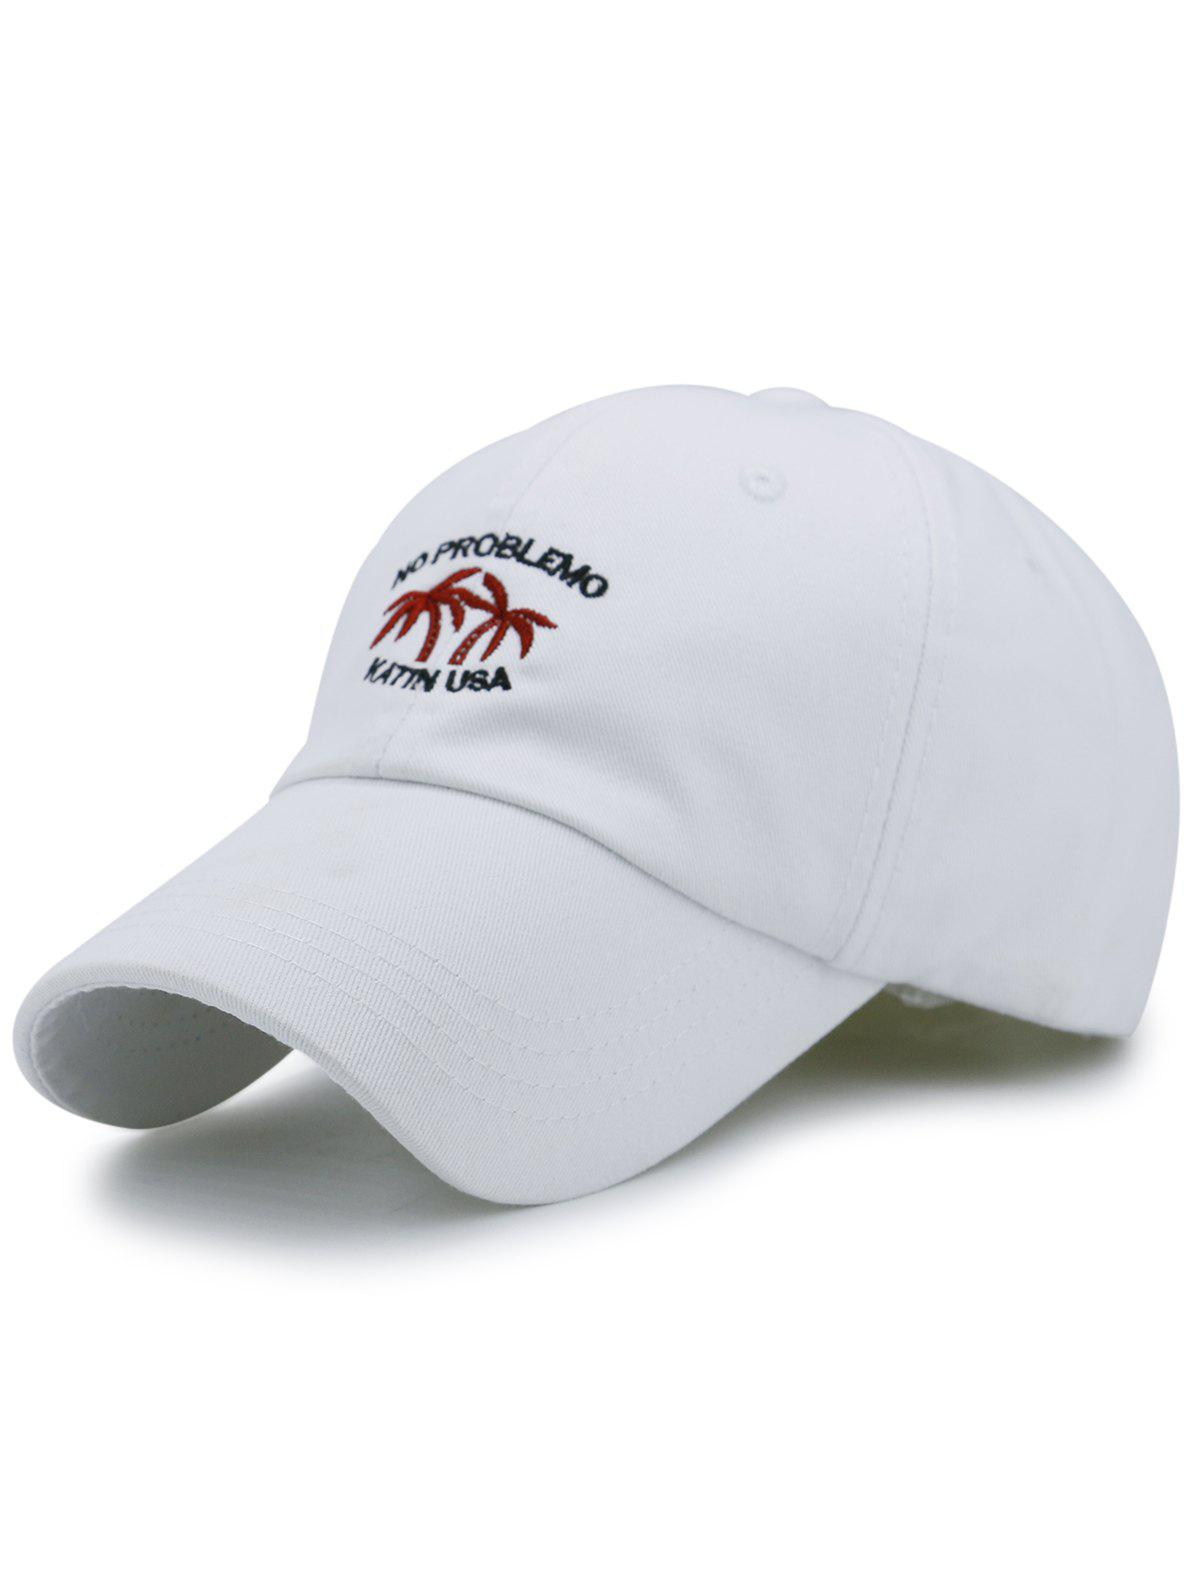 Coconut Tree Embroidery Adjustable Sunscreen Hat - WHITE